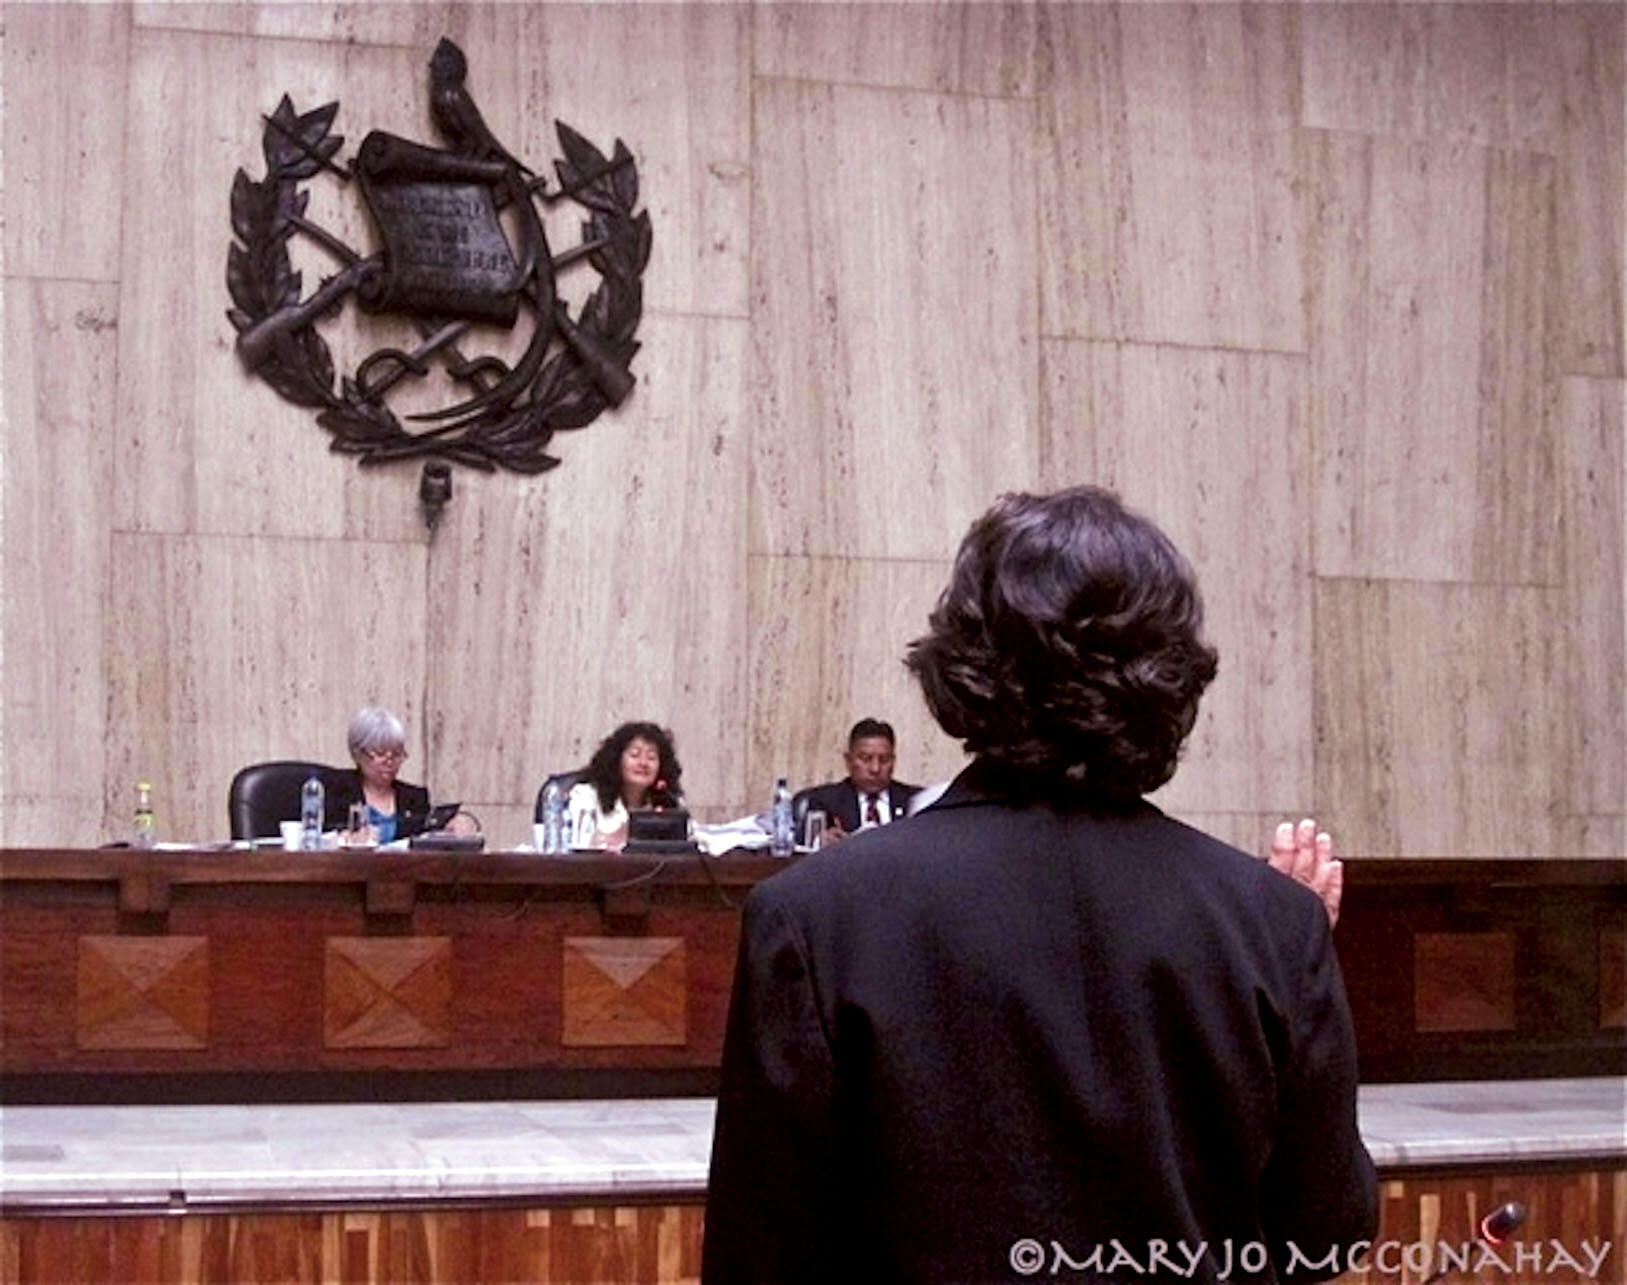 Beatriz Manz is sworn in at the Ríos Montt trial in front of (from left) Justices Patricia Bustamante, Yassmin Barrios, and Pablo Xitumul. (Photo by Mary Jo McConahay.)